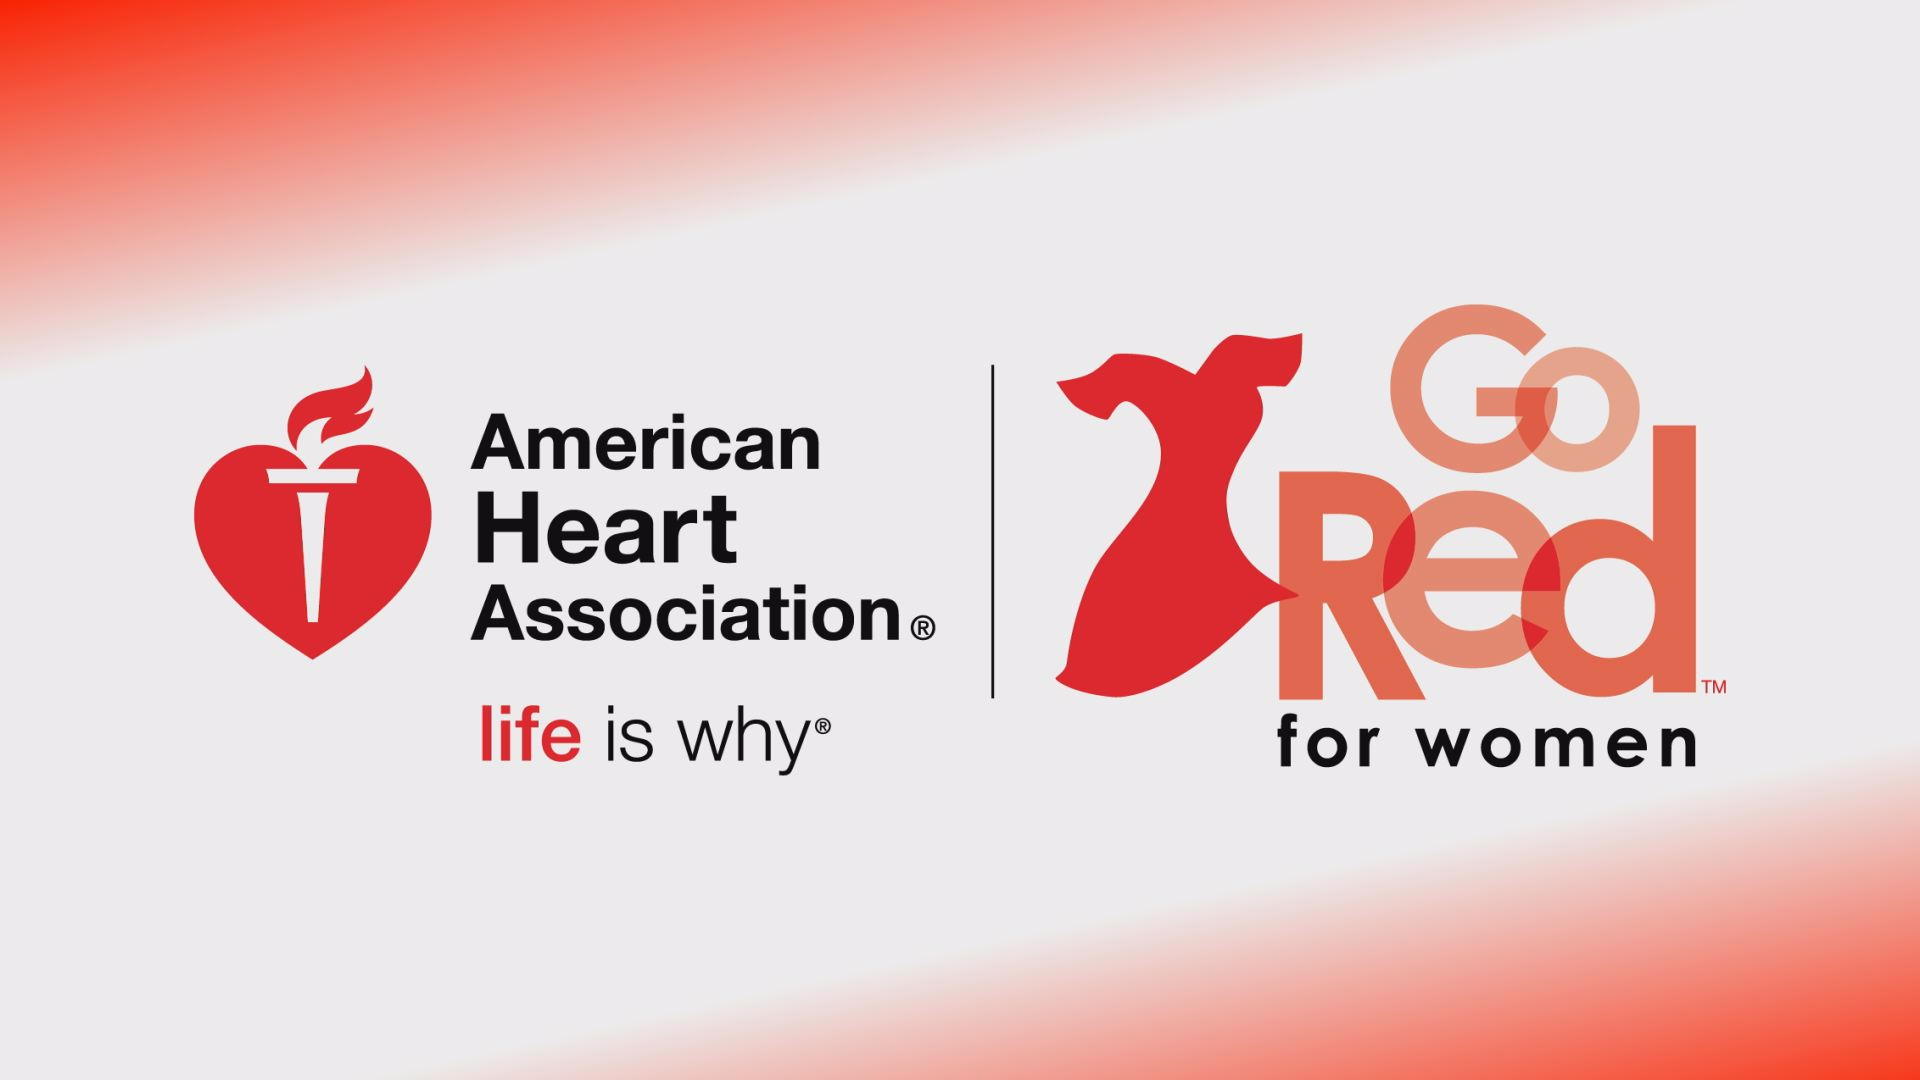 aha-go-red-logo00000000_234731